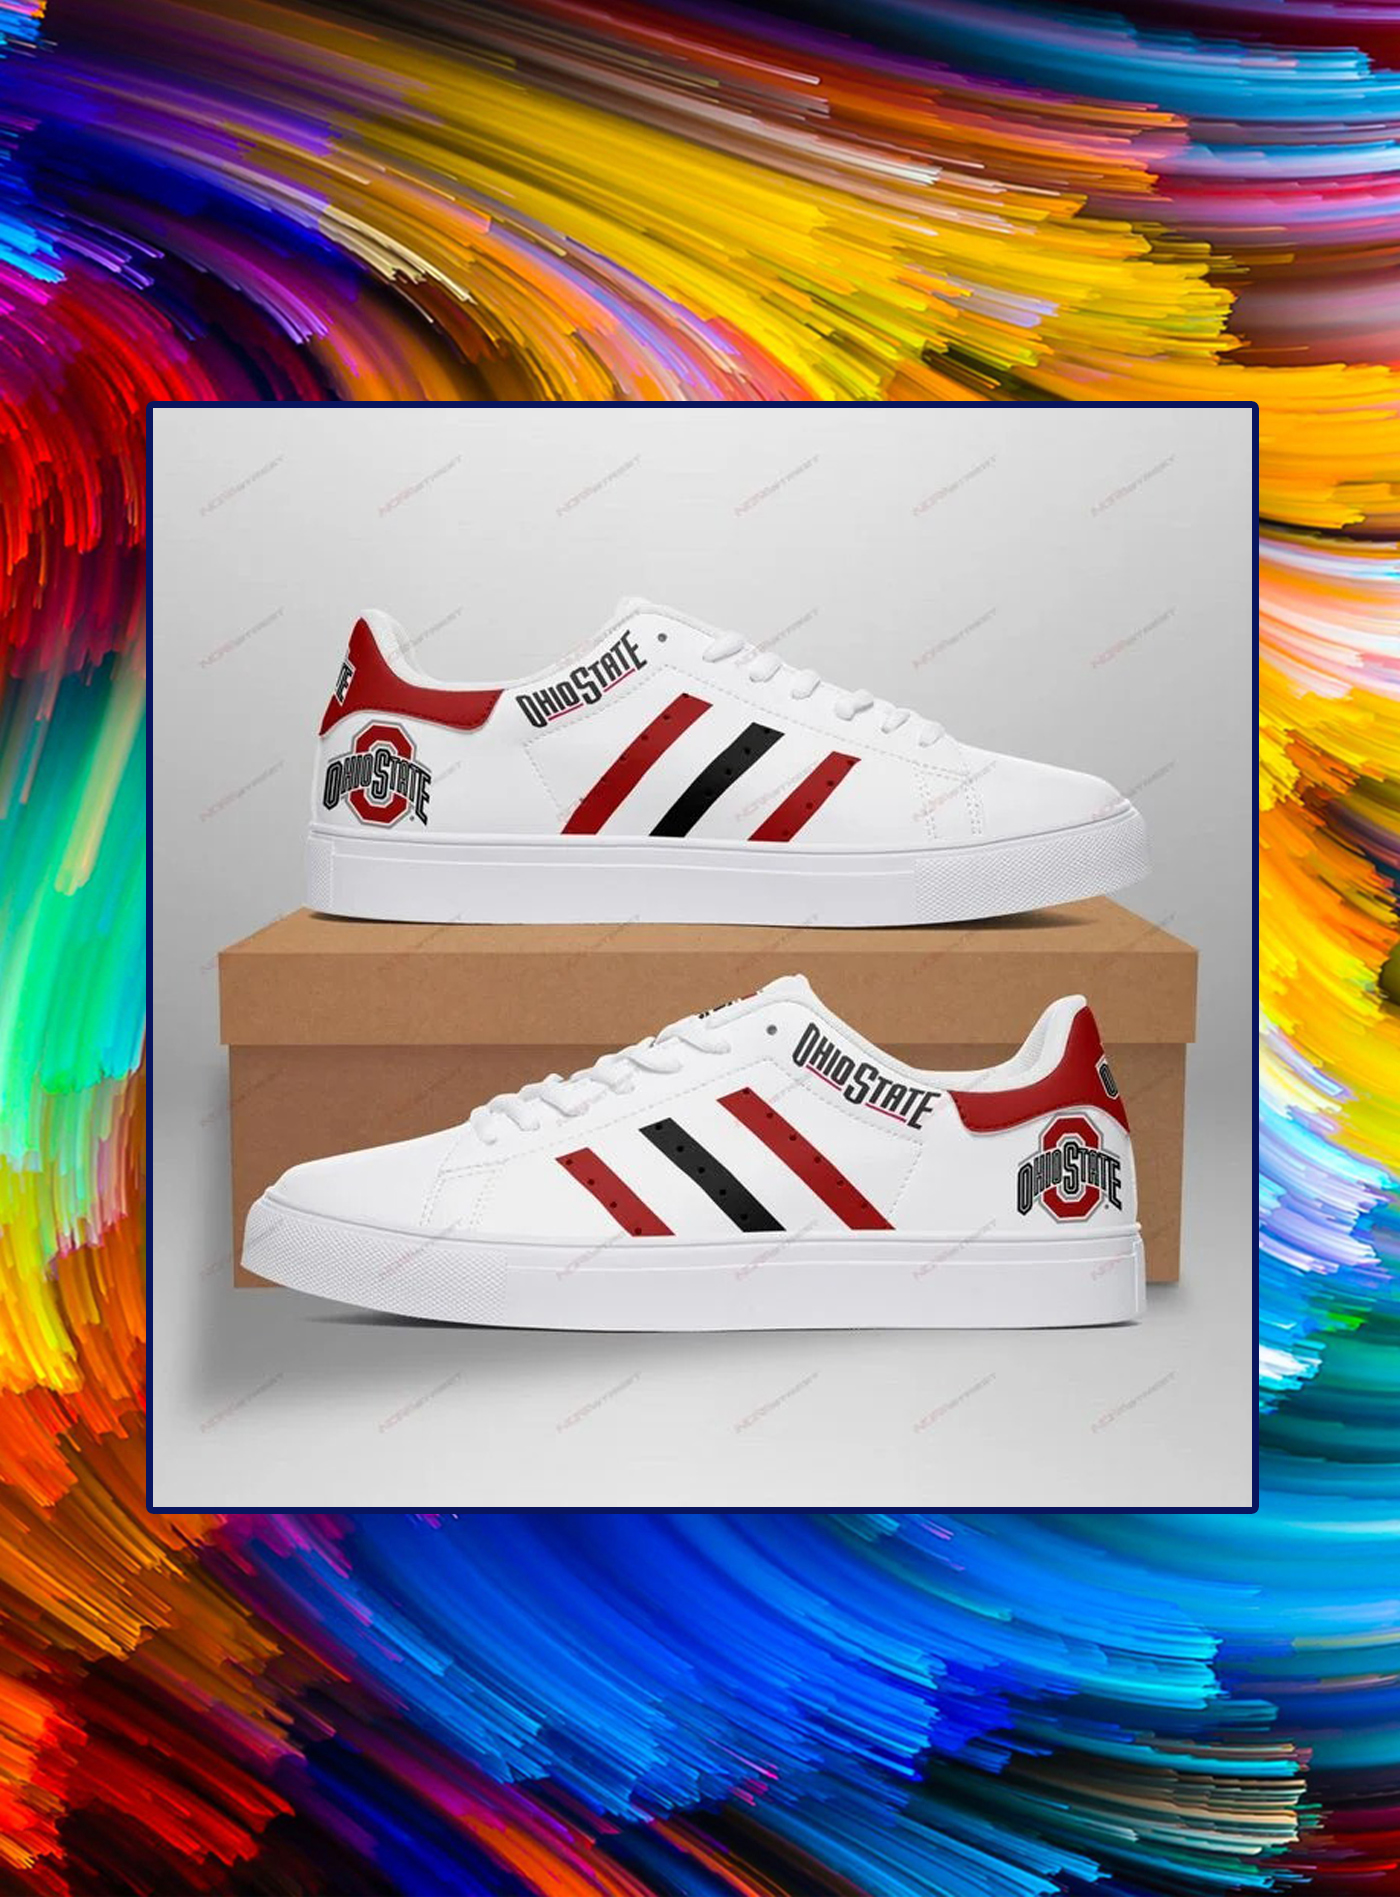 Ohio state buckeyes low top shoes